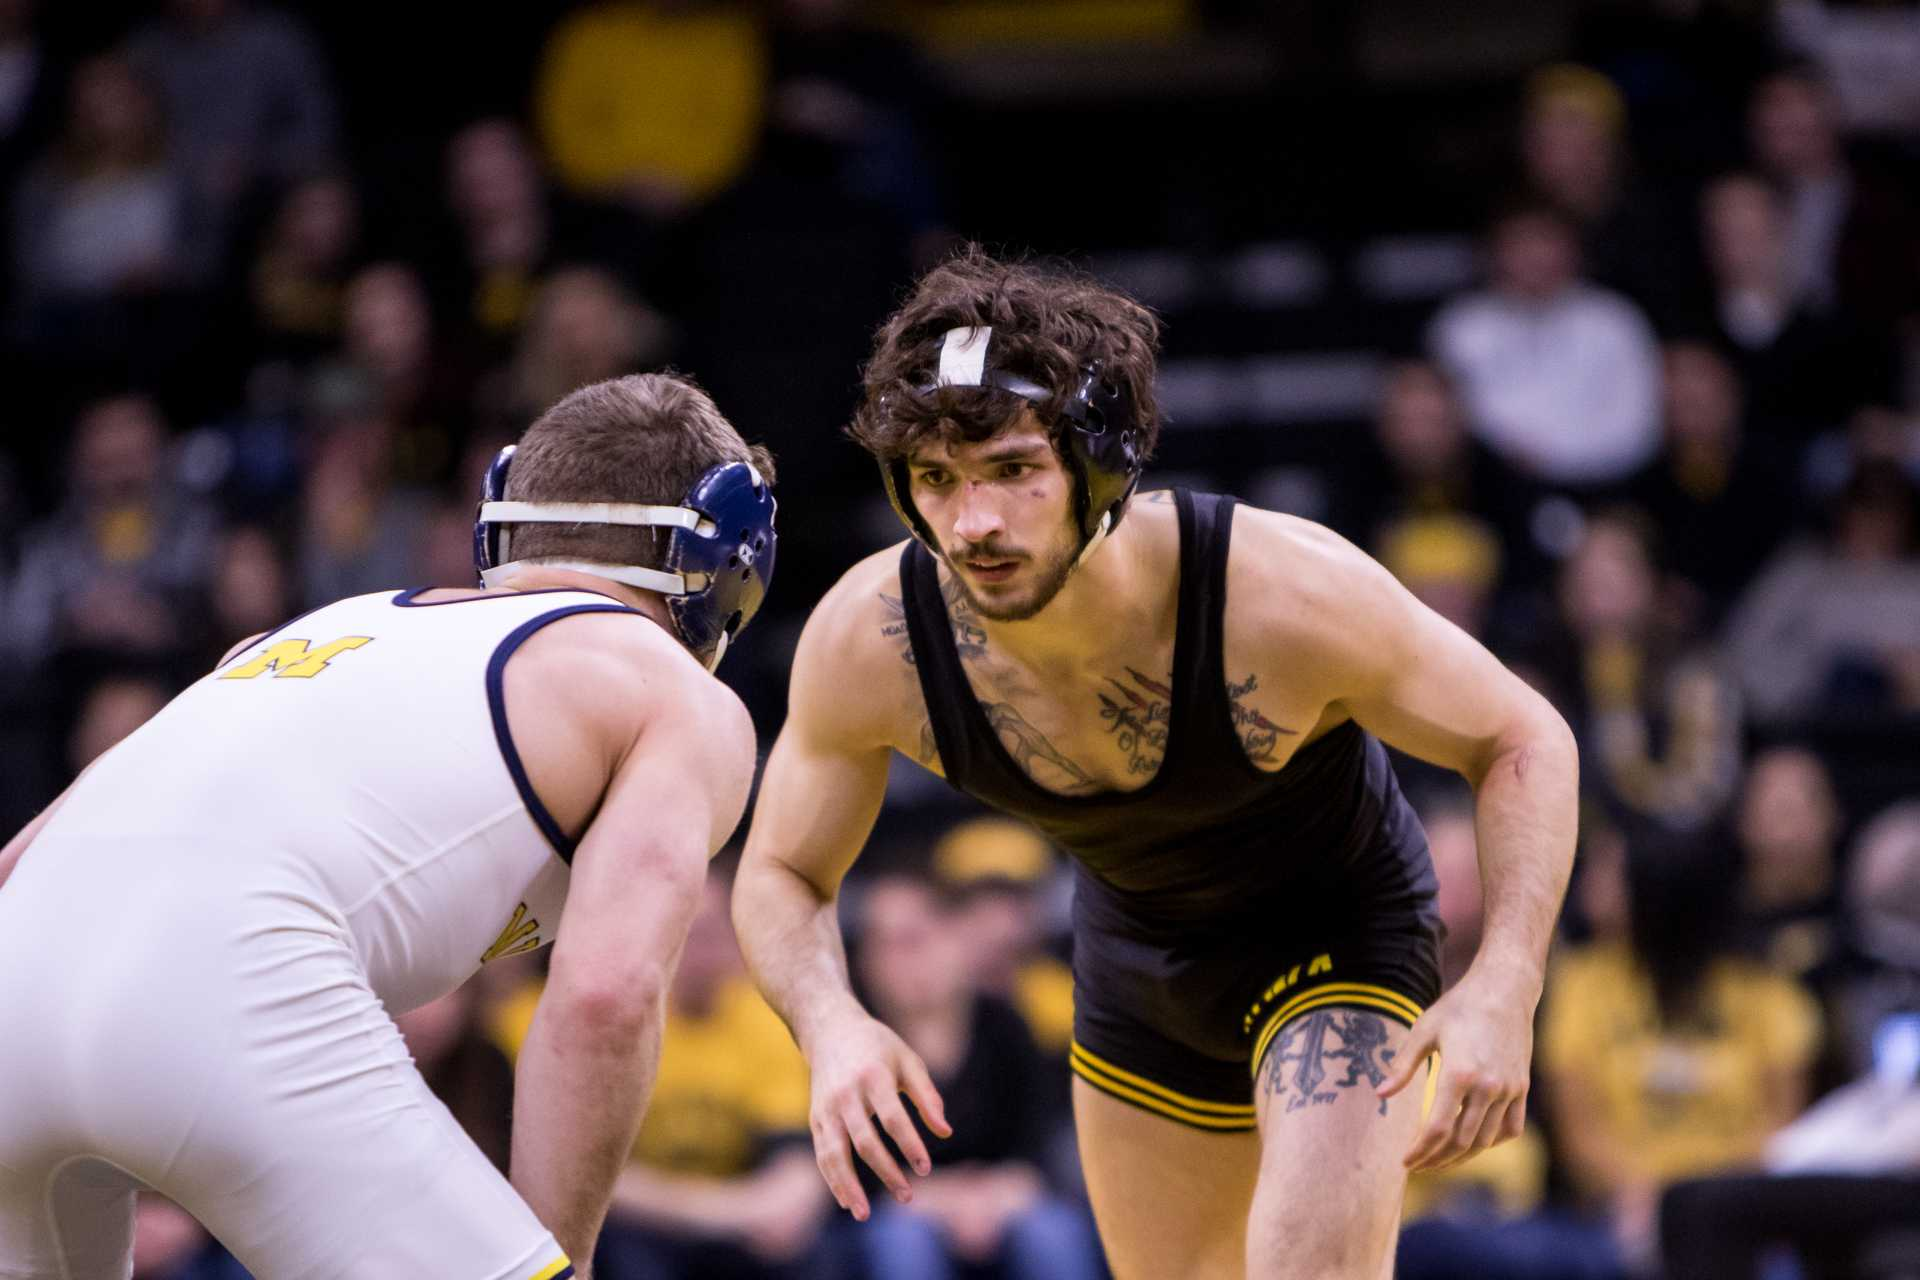 Iowa wrestling's Stoll, Turk suspended for season-opener